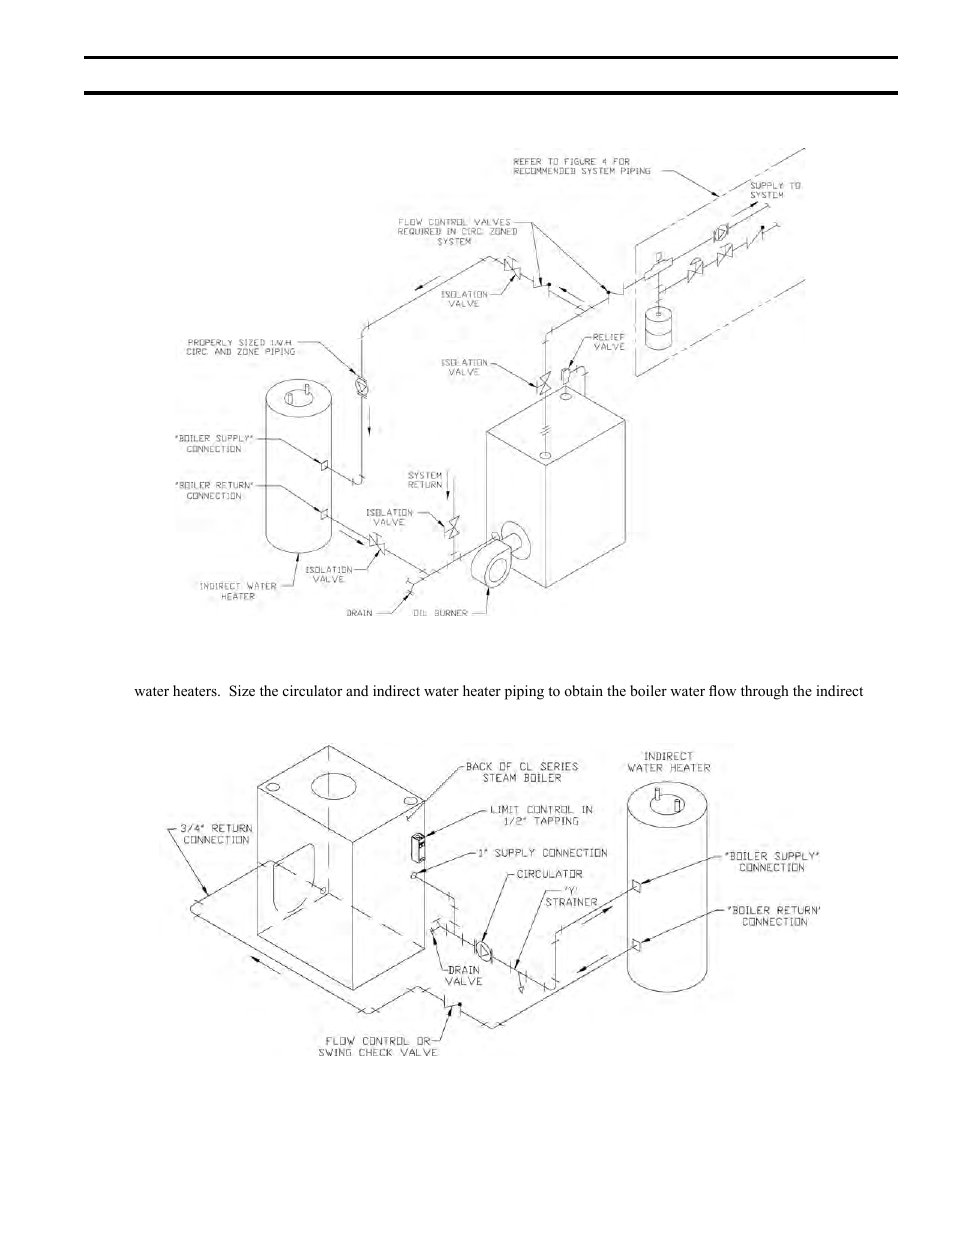 Iii indirect water heater piping energy tech laboratories new iii indirect water heater piping energy tech laboratories new yorker cl series user manual page 23 52 ccuart Choice Image